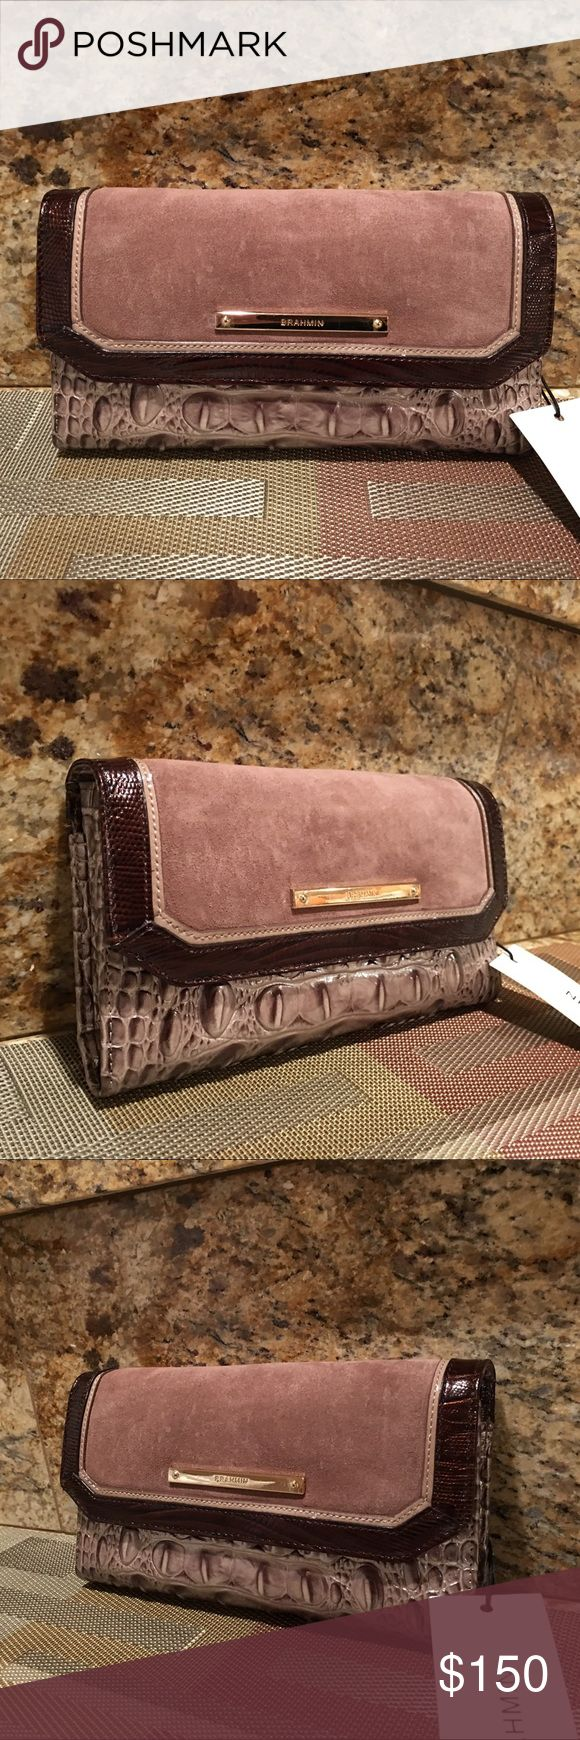 Brahmin Chardonnay Clermont Soft Checkbook Wallet New with tag. Comes with pen, check cover and registration car Brahmin Bags Wallets